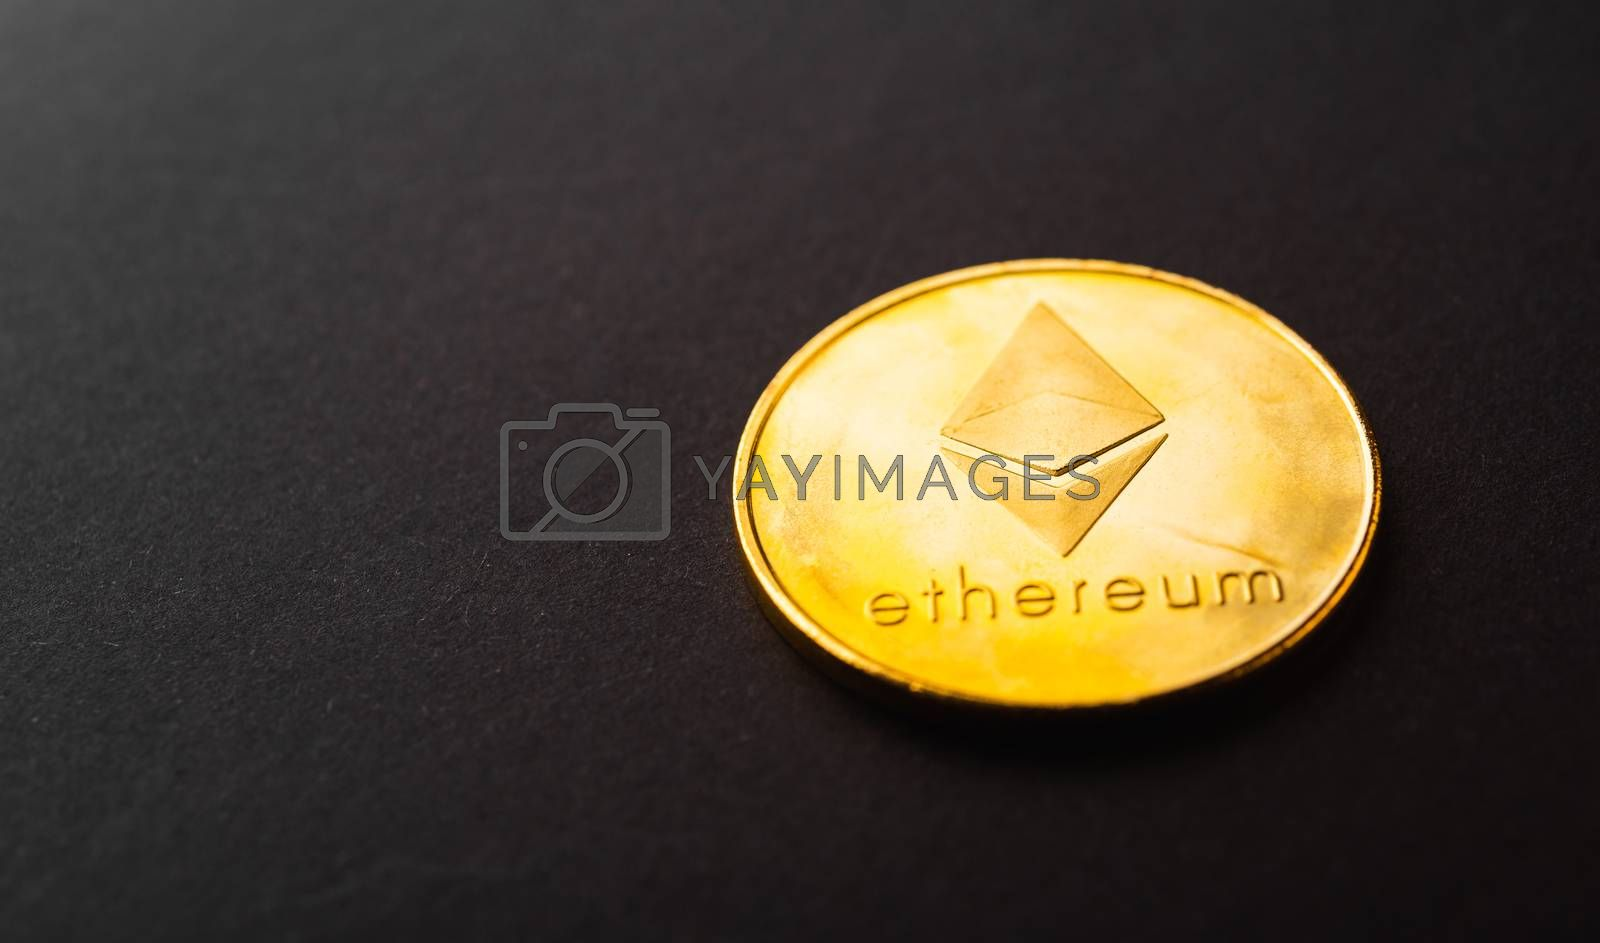 Golden ether coins or Ethereum network exchange on black background, blockchain and money cryptocurrency (crypto currency) concept